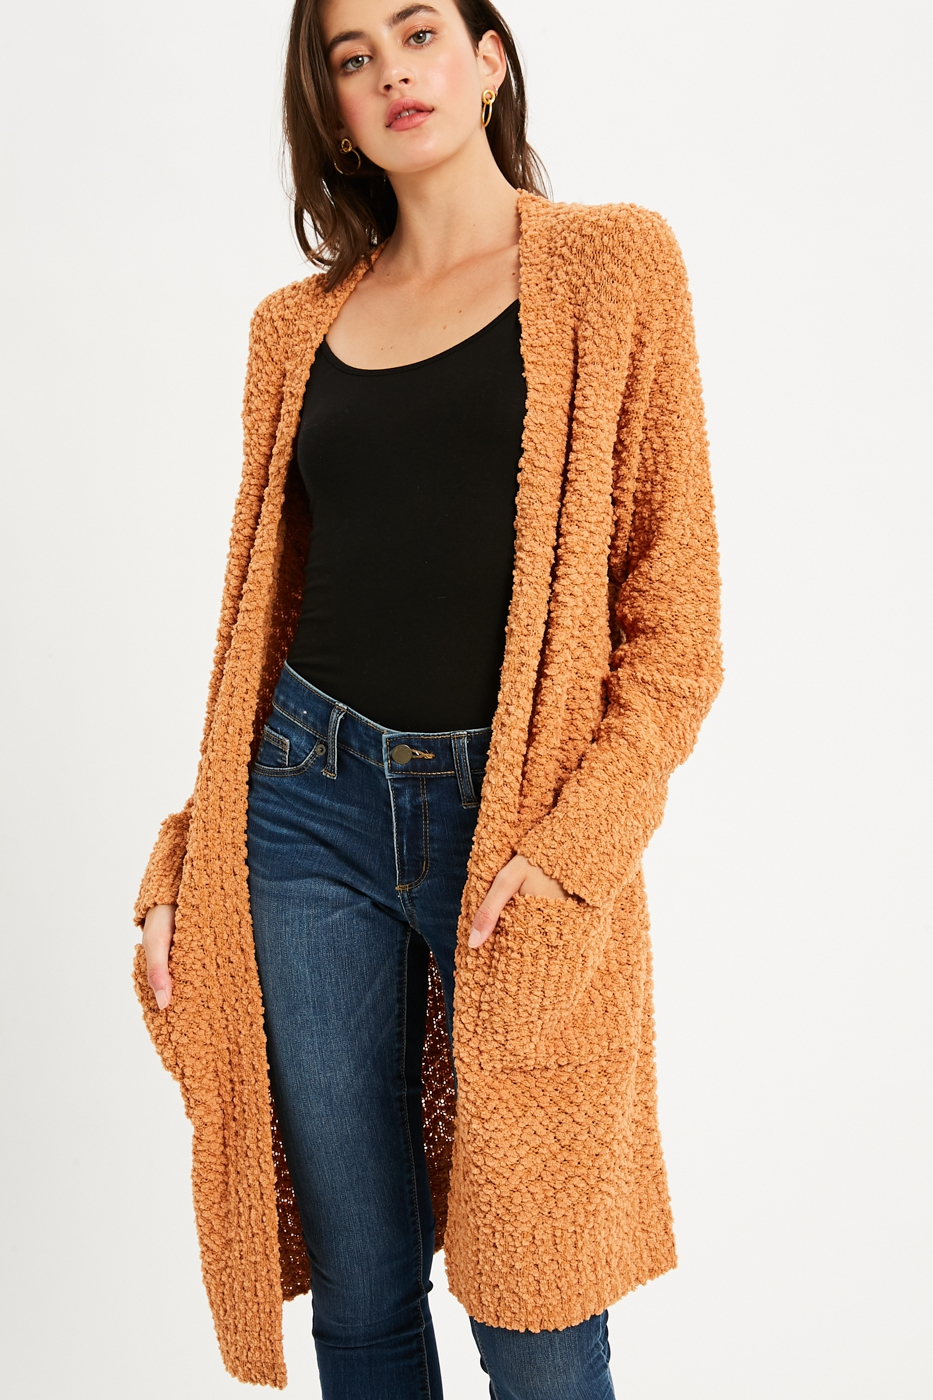 Boucle Comfy Open Front Cardigan - orangeshine.com